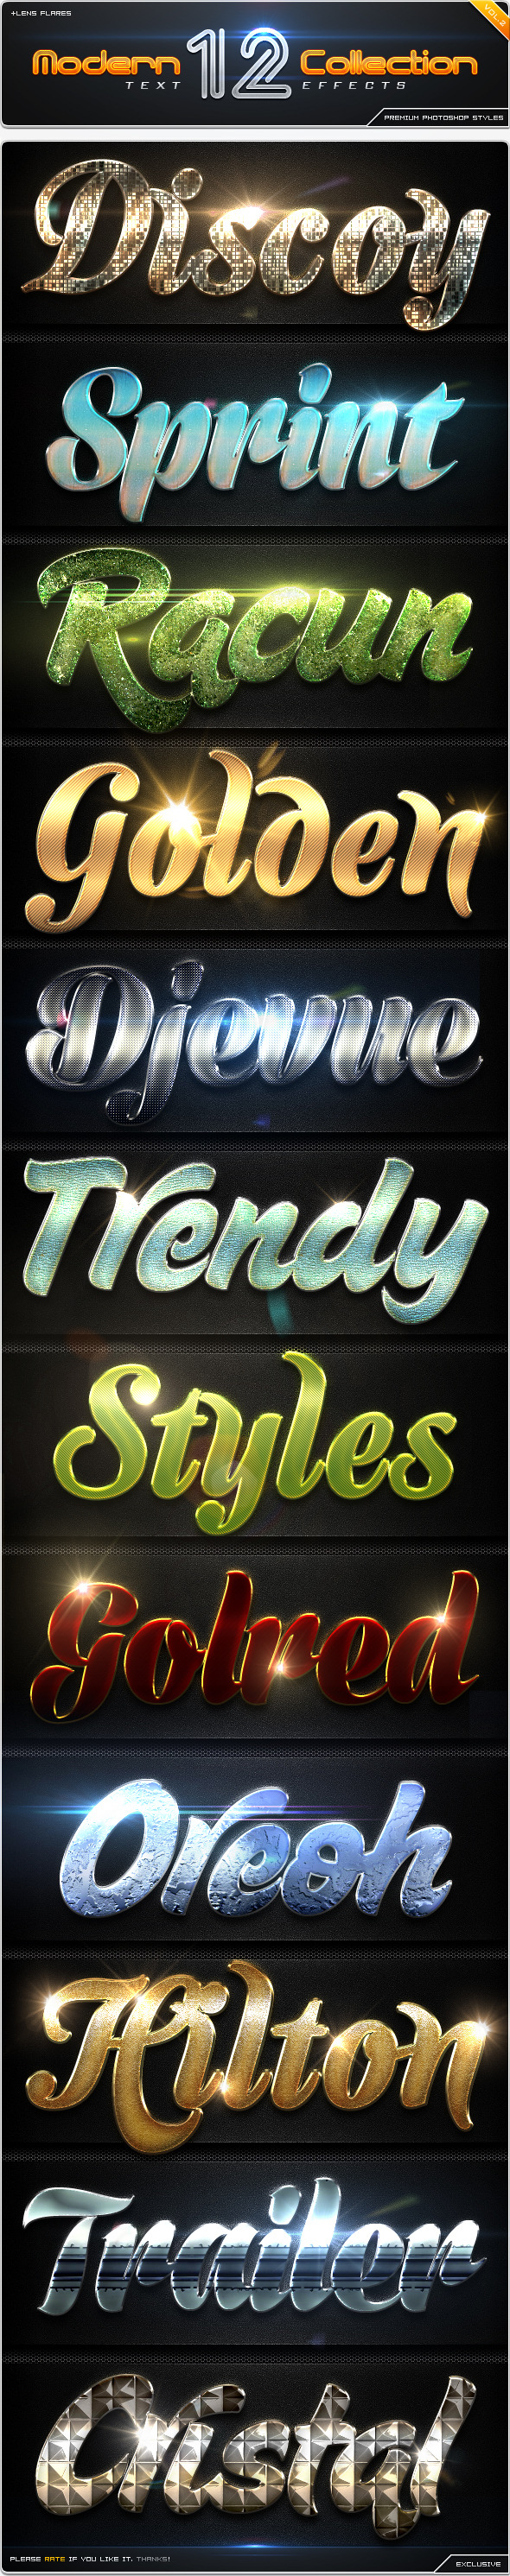 12 Modern Collection Text Effect Styles Vol.2  - Text Effects Styles